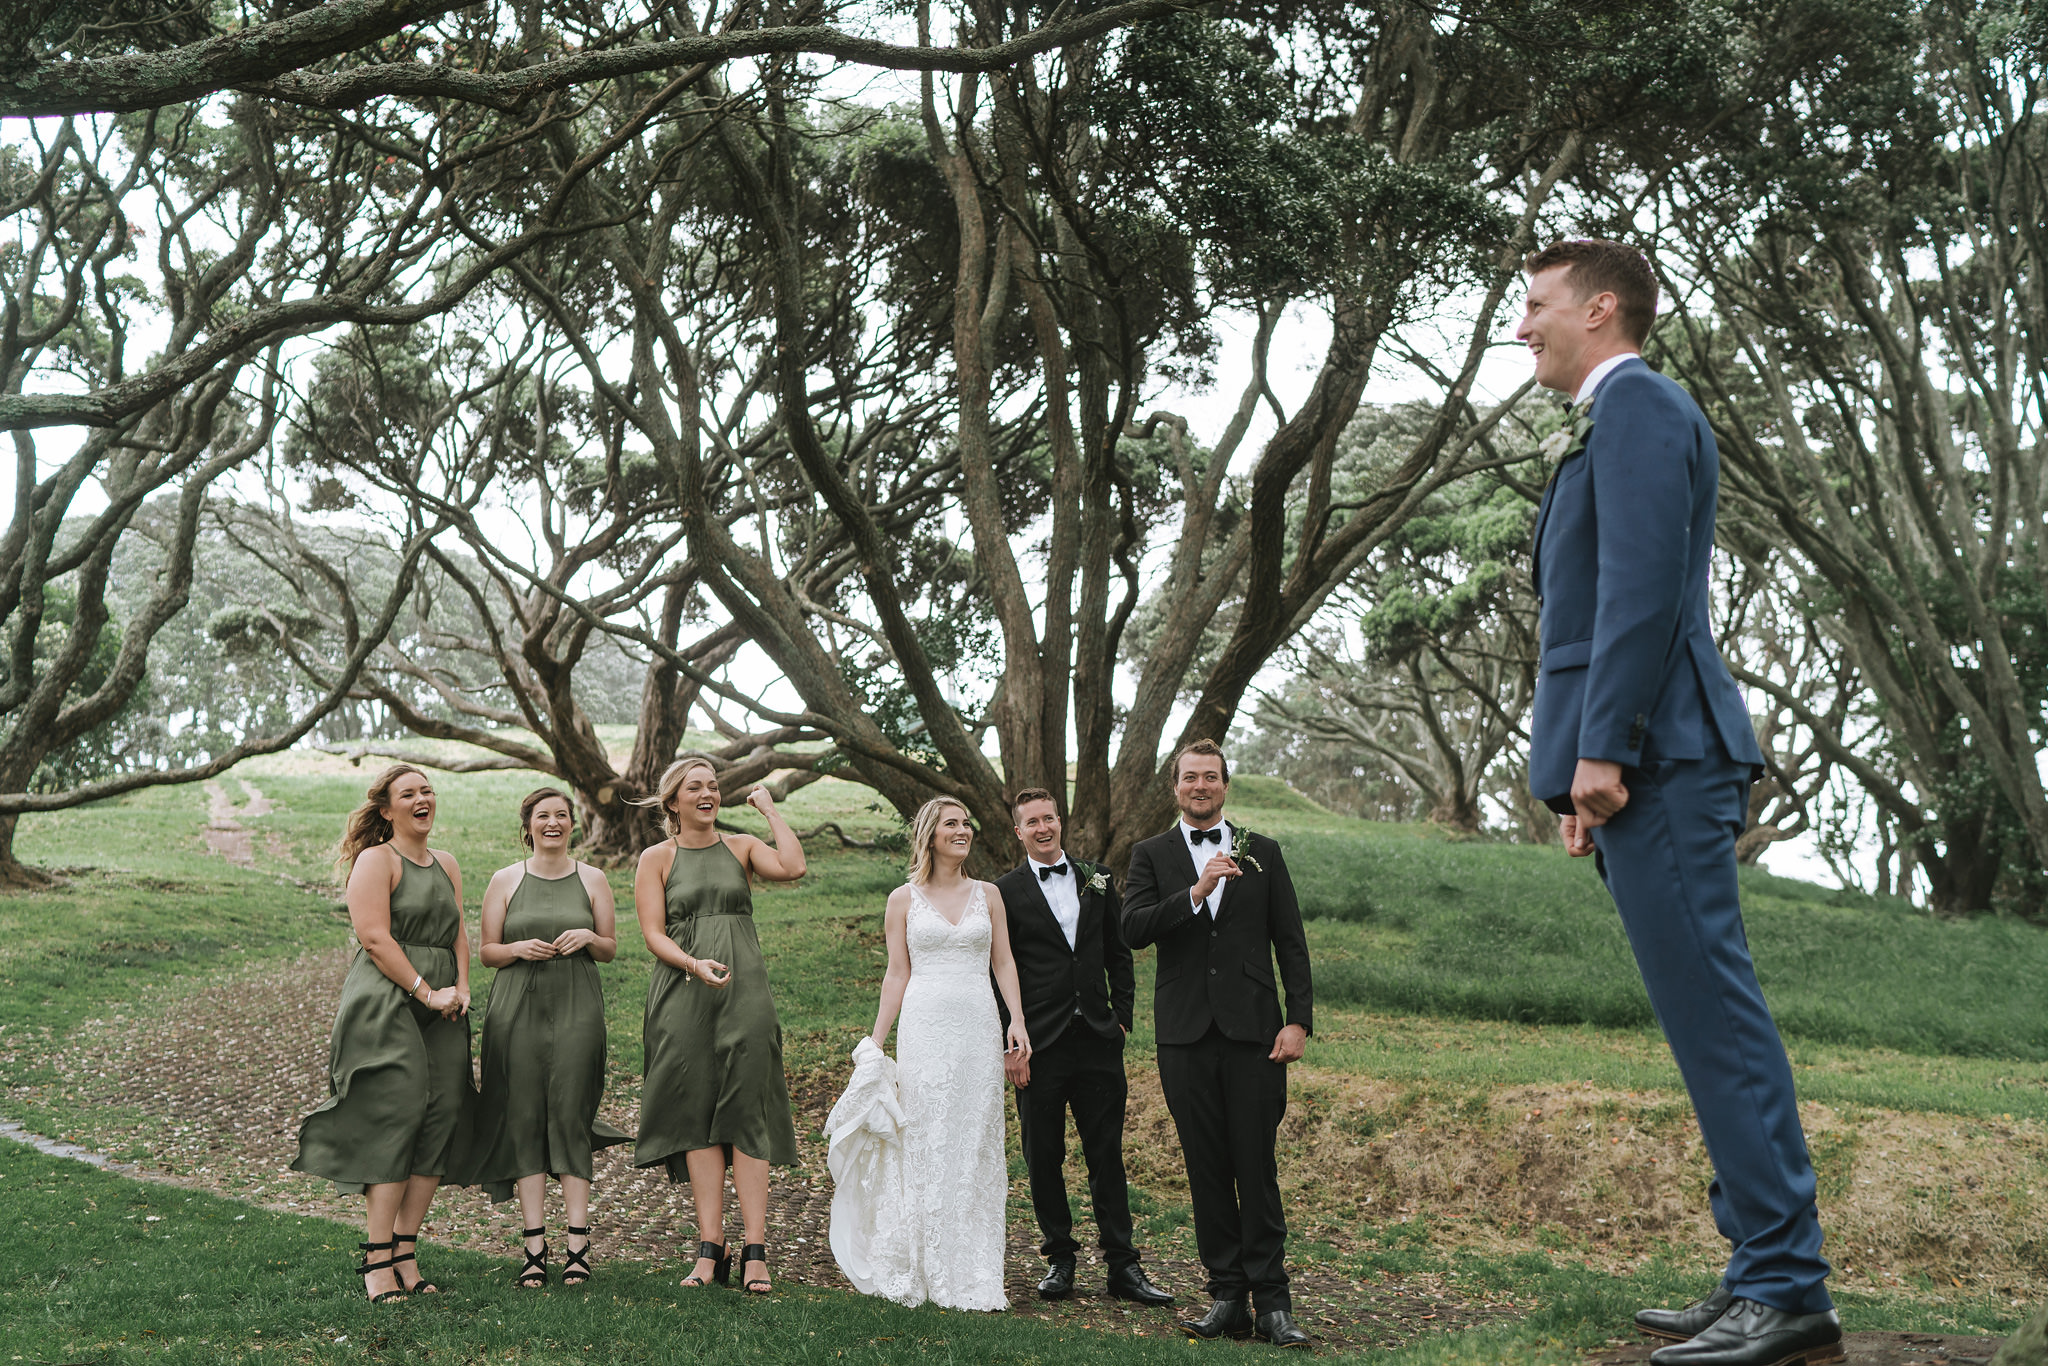 newfound-s-a-tauranga-new-zealand-wedding-photography-213